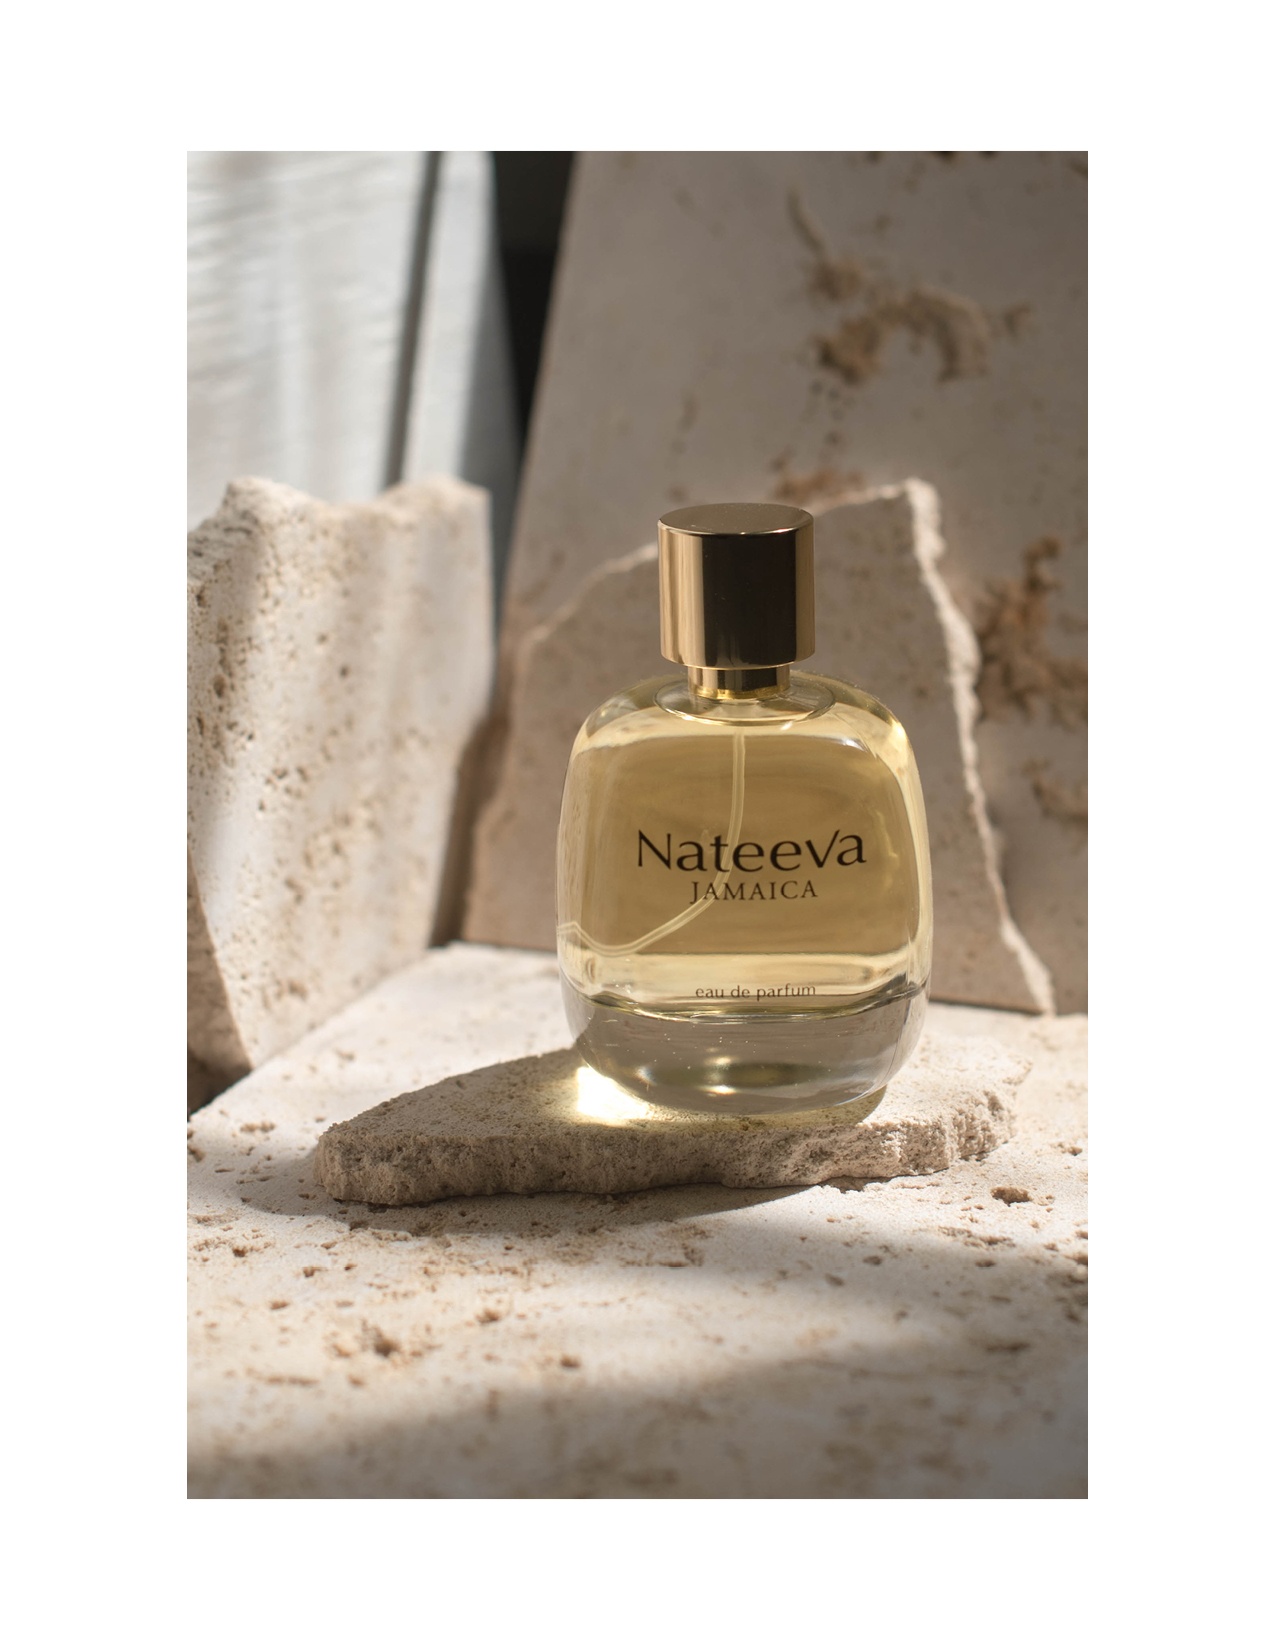 ROSE & IVY Journal Spritz Yourself to the Tropics with Nateeva